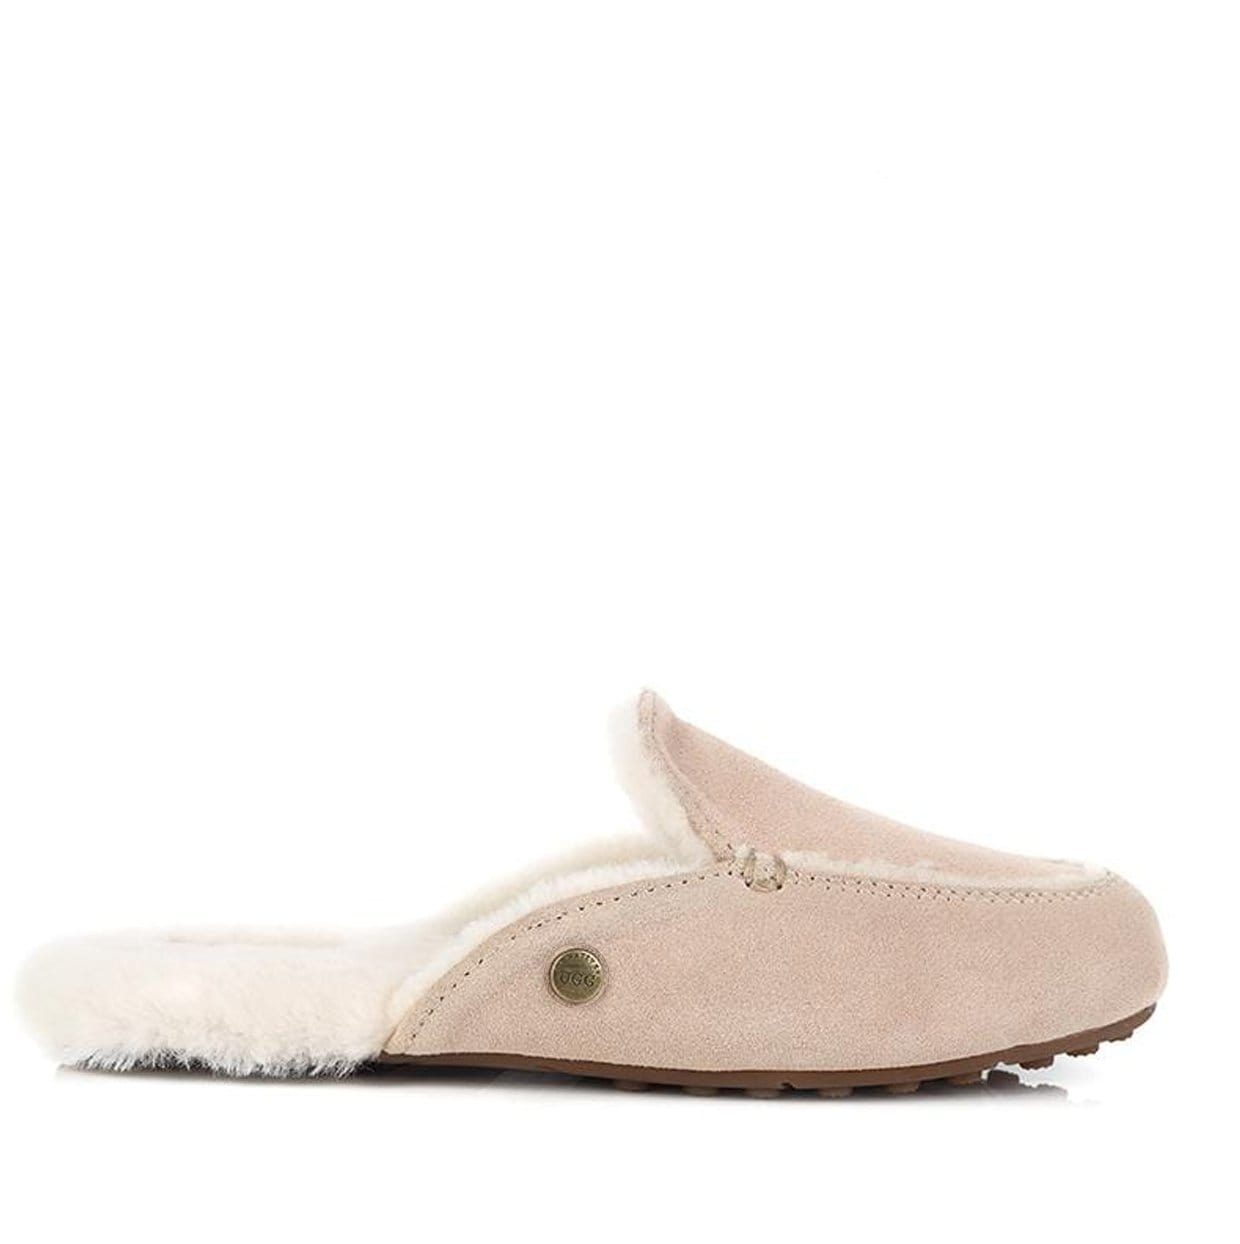 UGG Lana Slippers